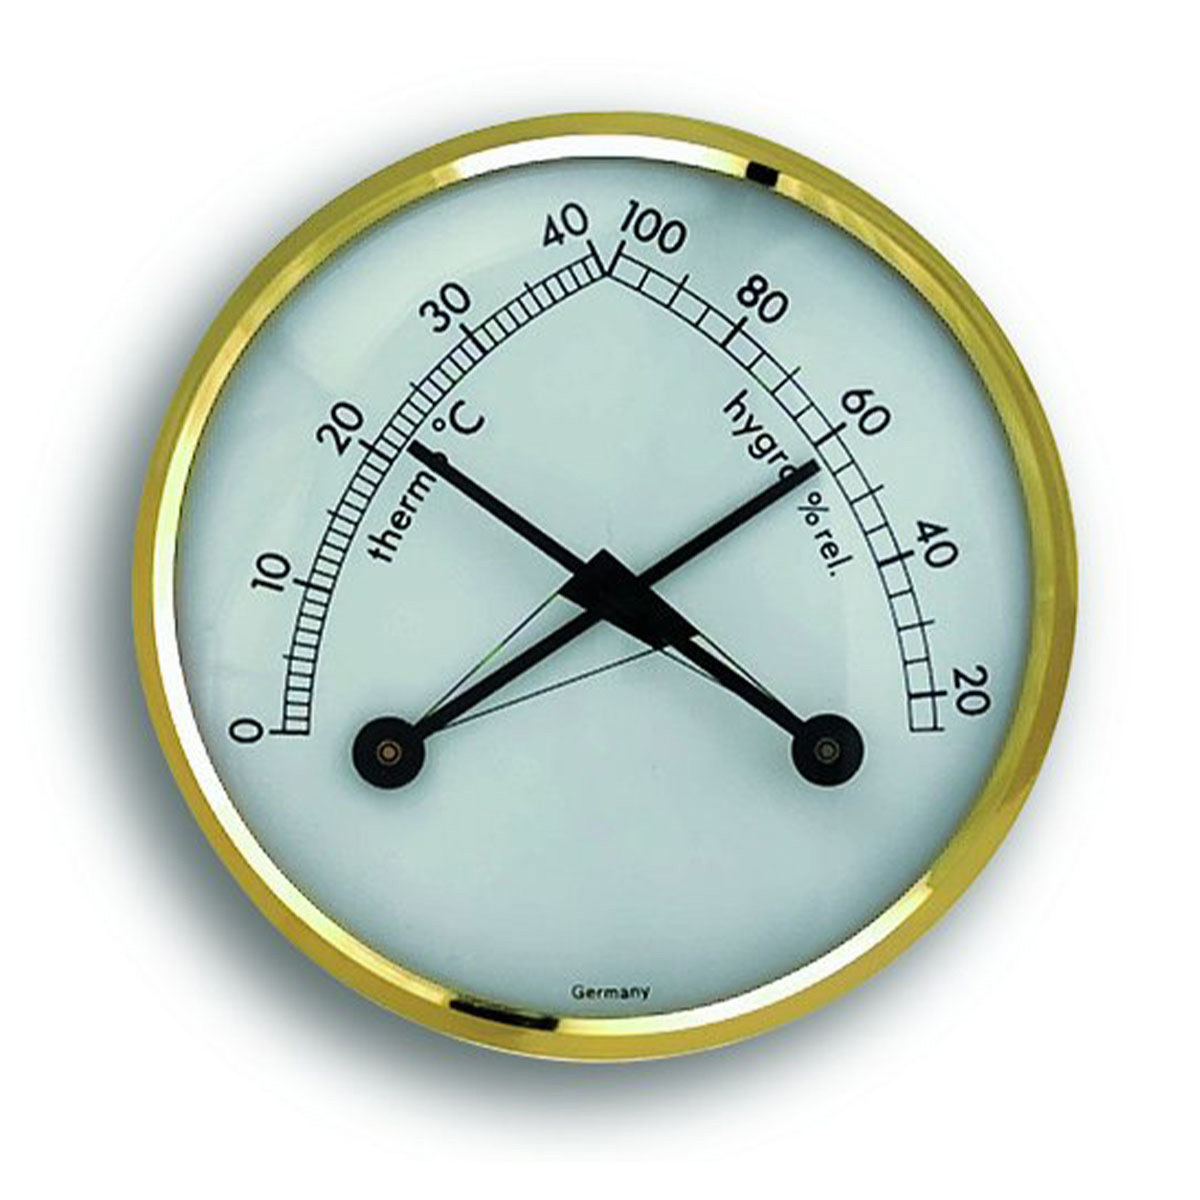 45-2006-analoges-thermo-hygrometer-klimatherm-1200x1200px.jpg